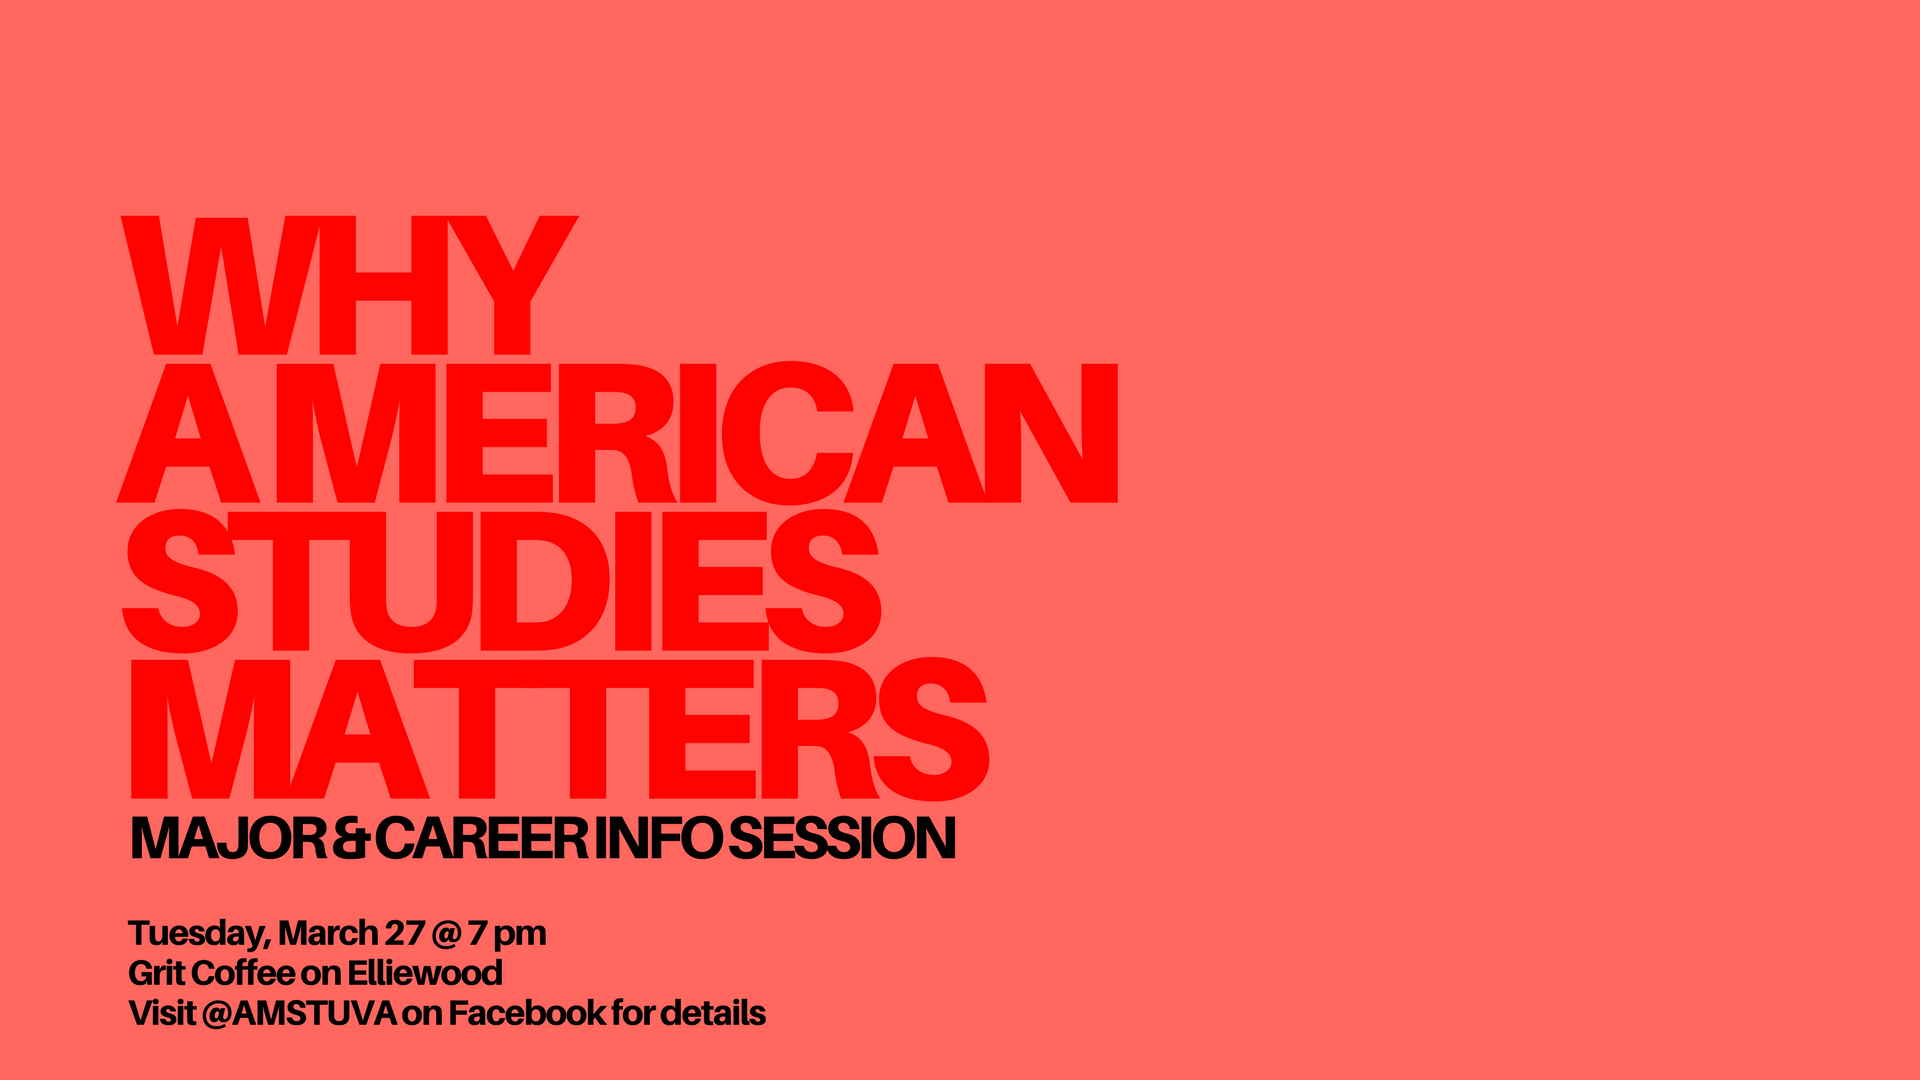 UVA Why American Studies Matters